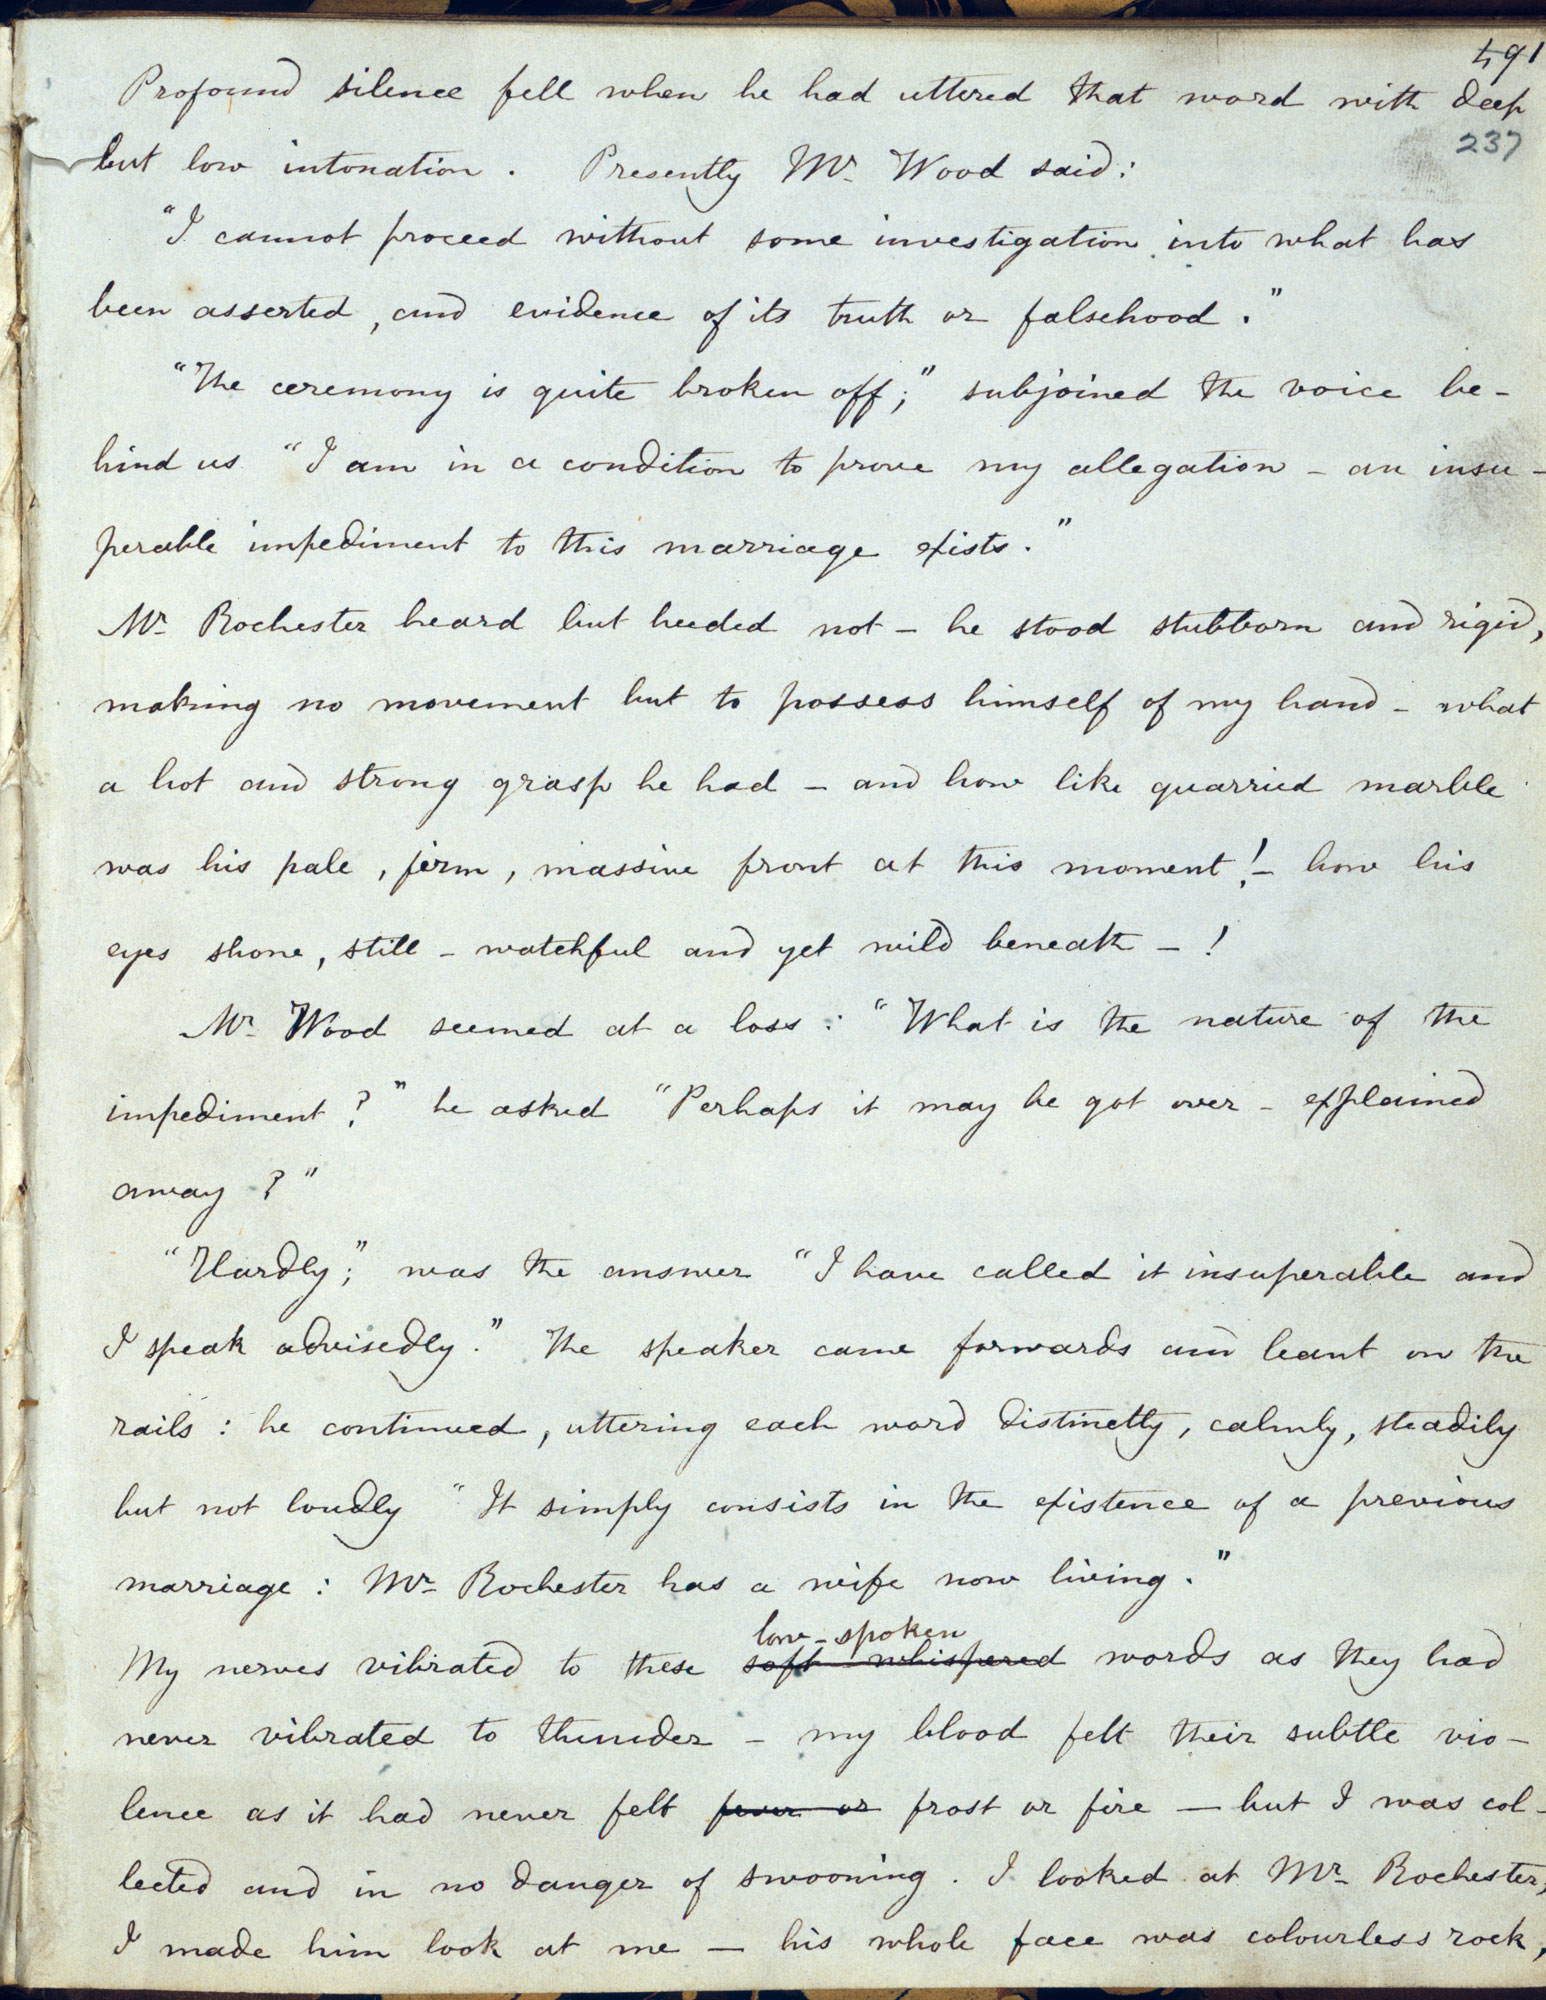 Fair copy manuscript of Charlotte Brontë's Jane Eyre [folio: 237r]